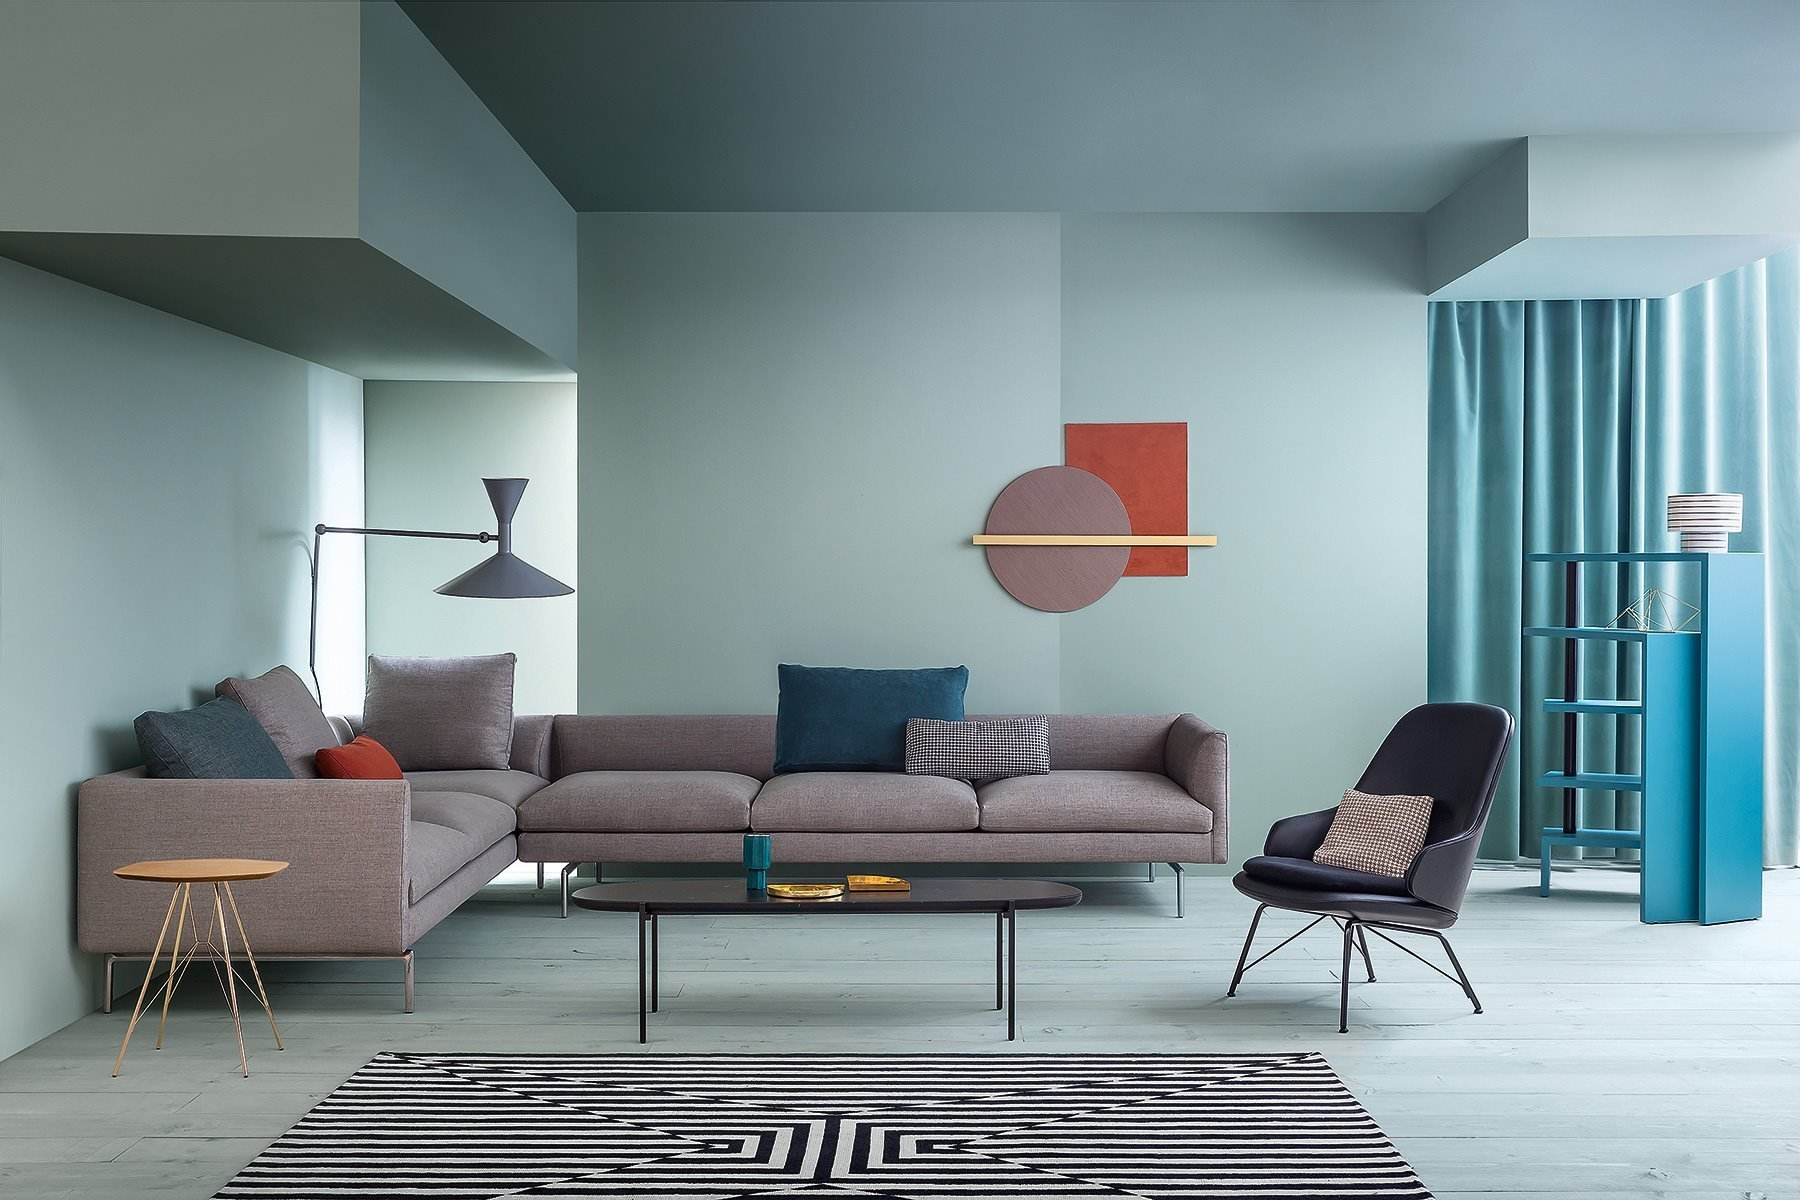 Flamingo Sofa modular from Zanotta, designed by Damian Williamson